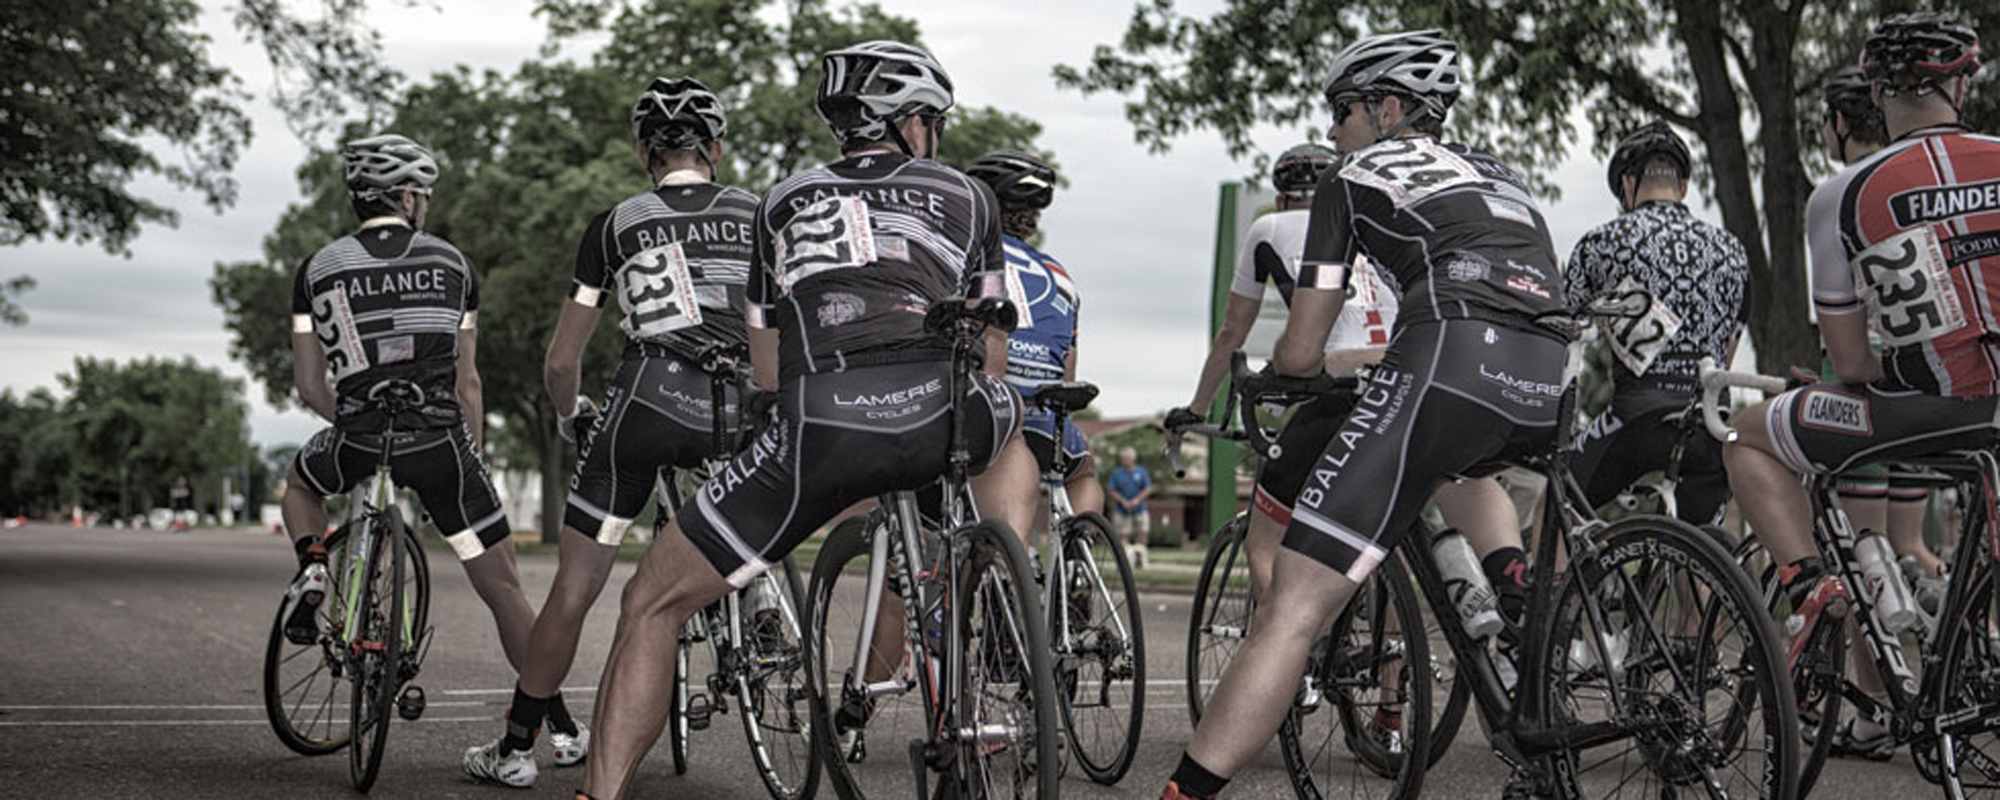 Ride Leaders - Read our leader bios and find the leader and type of ride that best meets your goals and abilities.